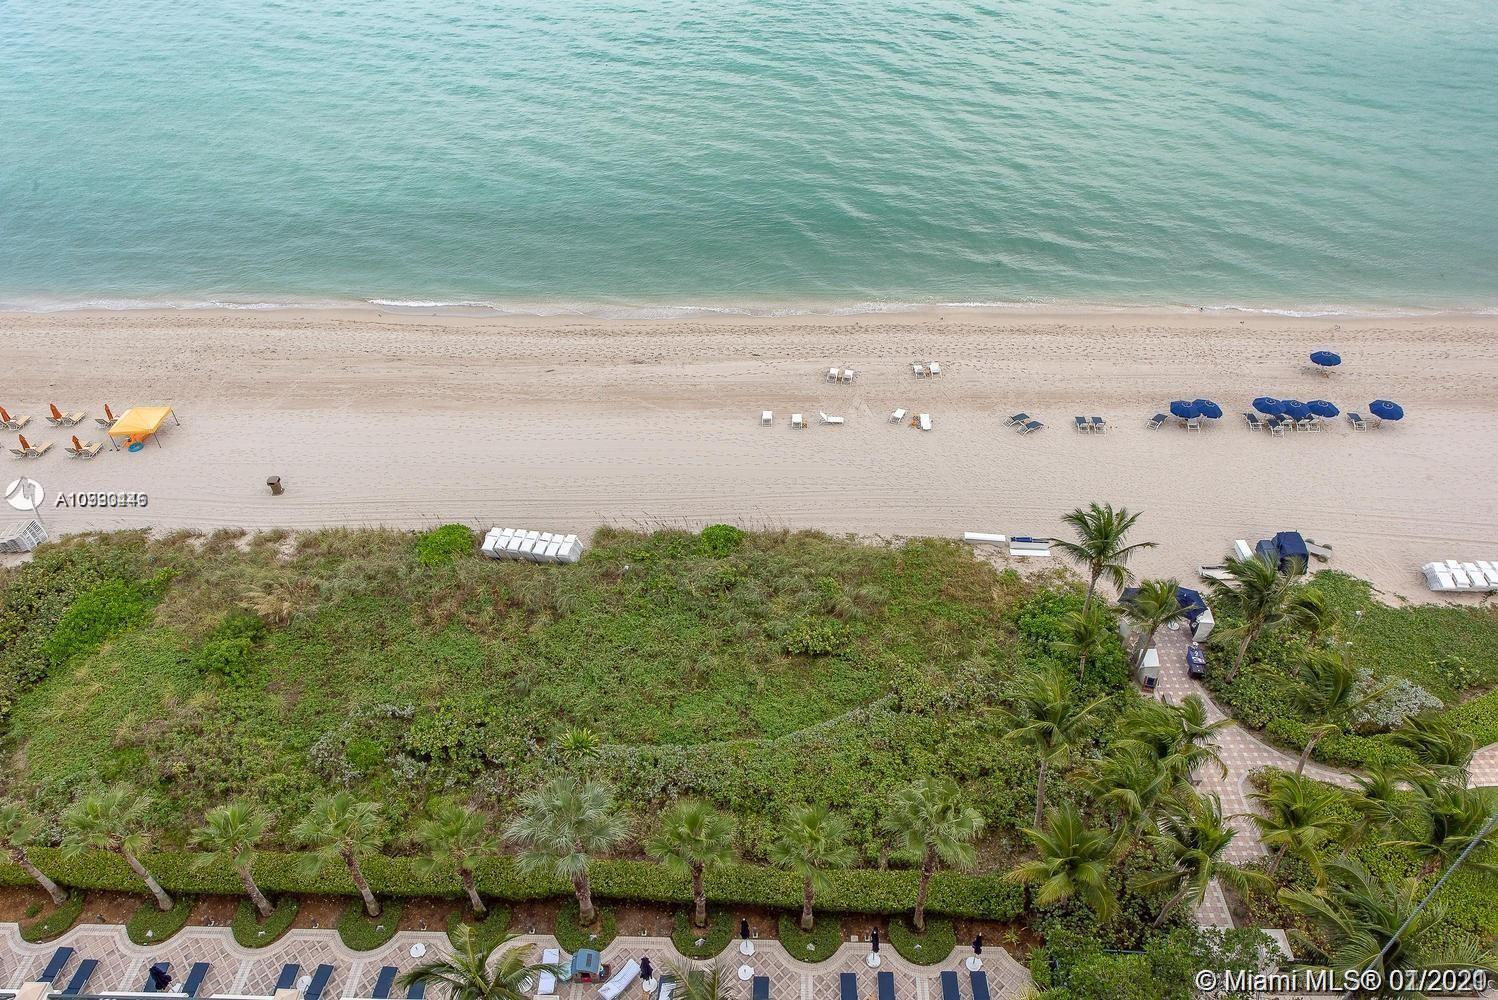 Amazing 3 Bedroom, 5.5 Bath & 3480 SQFT of Paradise.  With 2 vast entertainment spaces, expansive balconies, this home serves as a wonderful family home or vacation get-a-way! Enjoy unobstructed ocean, intercoastal & city views on the most desirable 03 line. Luxury is everywhere! Enjoy 5-star amenities w/ a resort-style spa, state of art fitness center, 2 restaurants, 24-hour security, concierge, private beach & 2 private pools are all waiting for you to call home. Whether you live in Florida full time or enjoy Miami as your vacation home, this is the perfect stunner to make your own. Easy to show & available immediately.